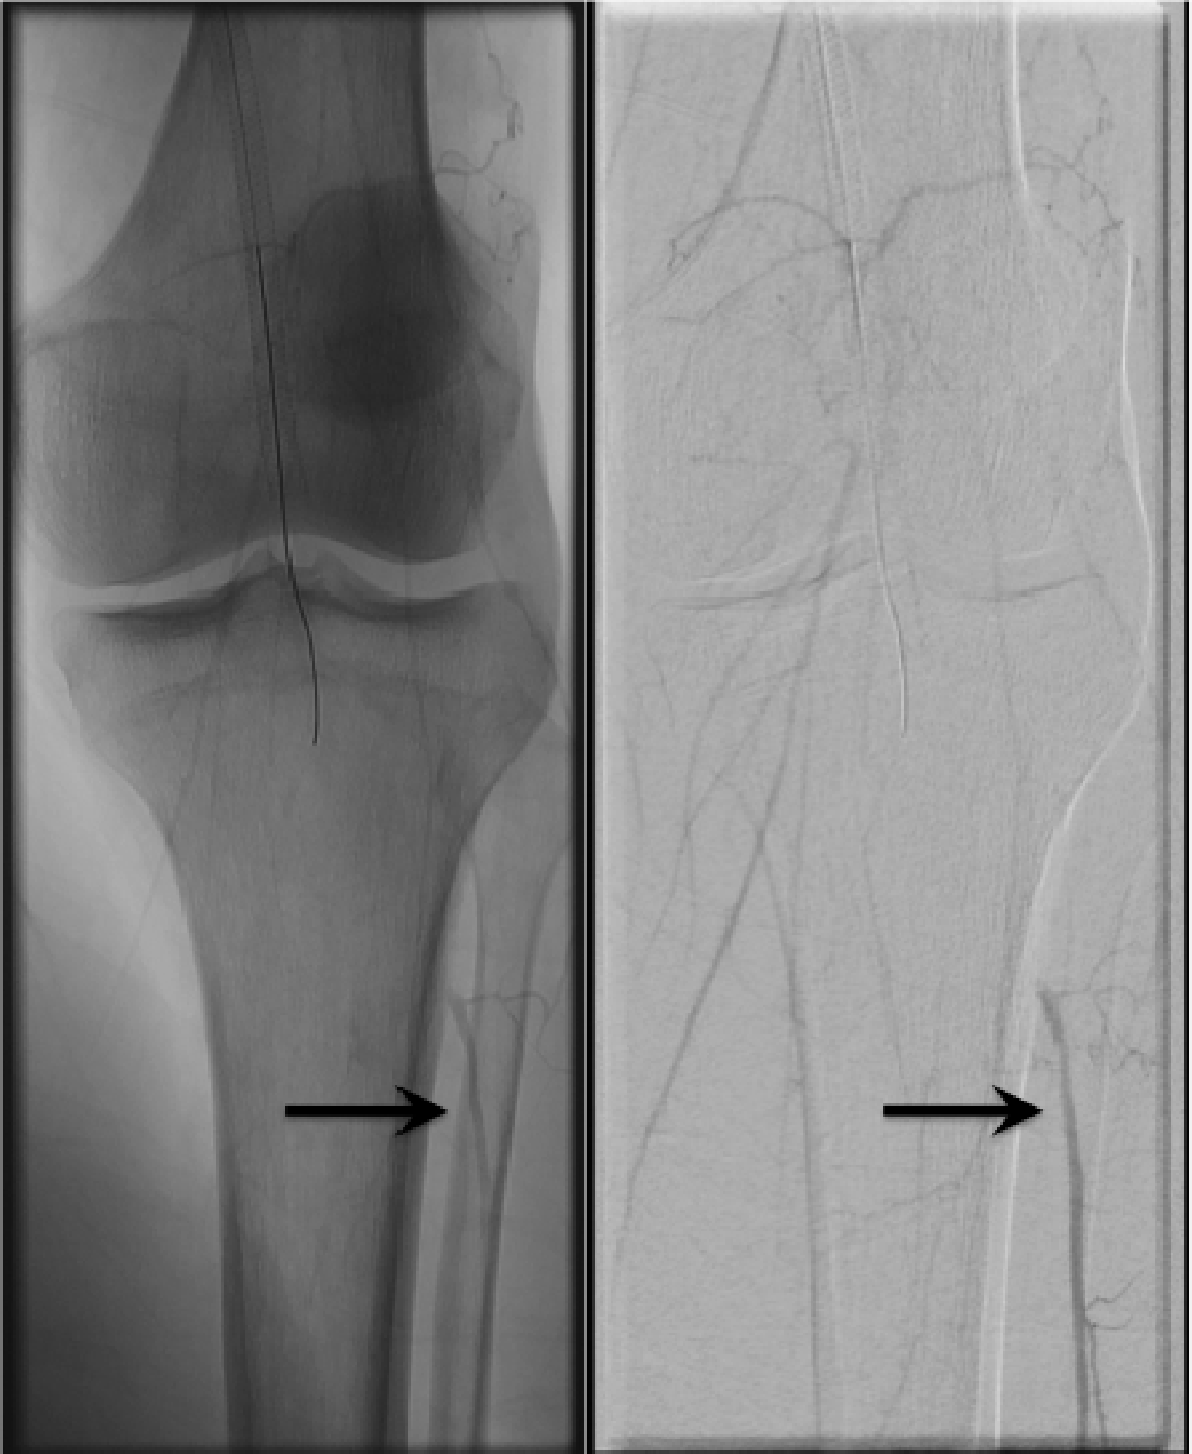 Figure 13: Distal embolization a DEP device. The terminal popliteal artery is occluded with proximal reconstitution of the anterior tibial artery from collaterals (arrows).